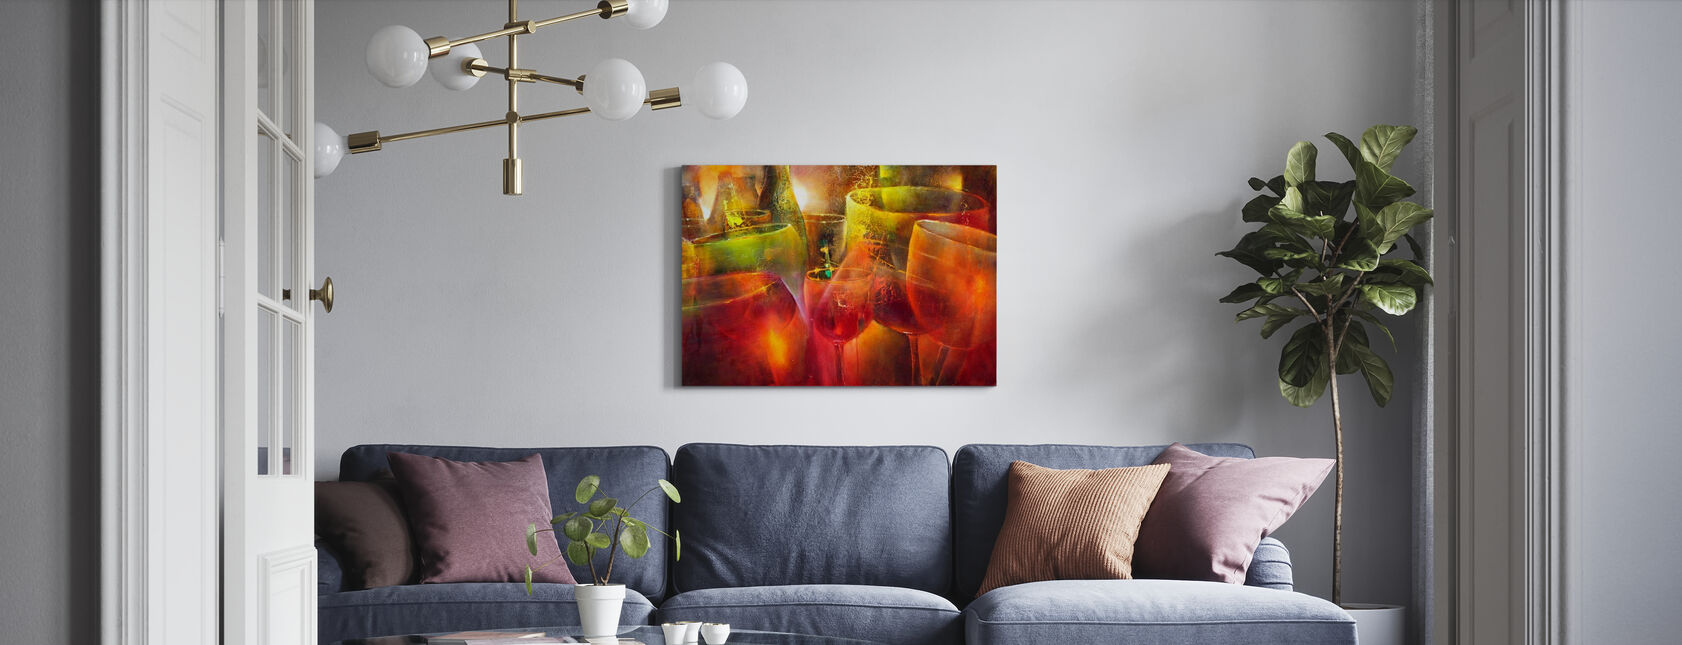 Late Hour - Canvas print - Living Room